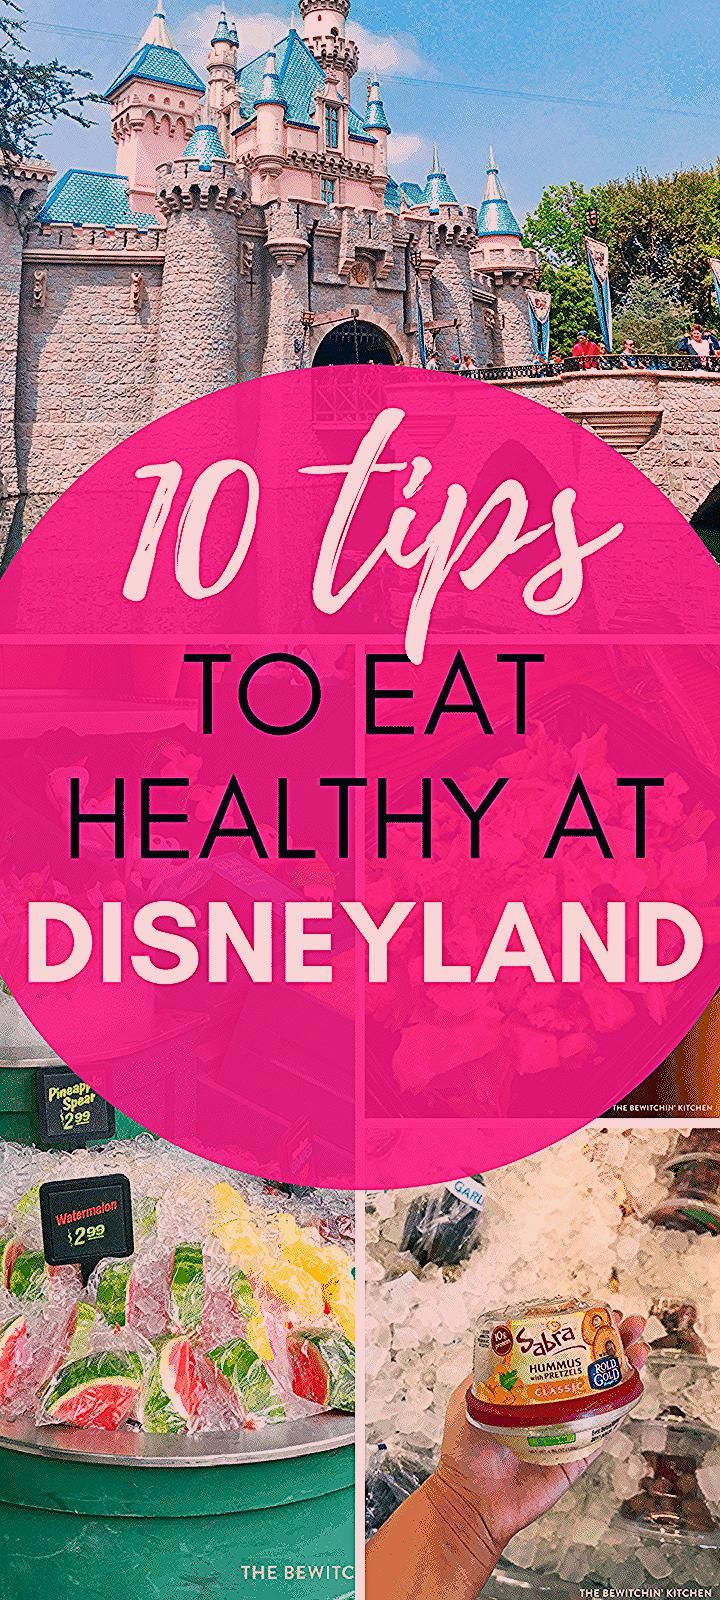 10 Tips to Eat Healthy at Disneyland | The Bewitchin' Kitchen